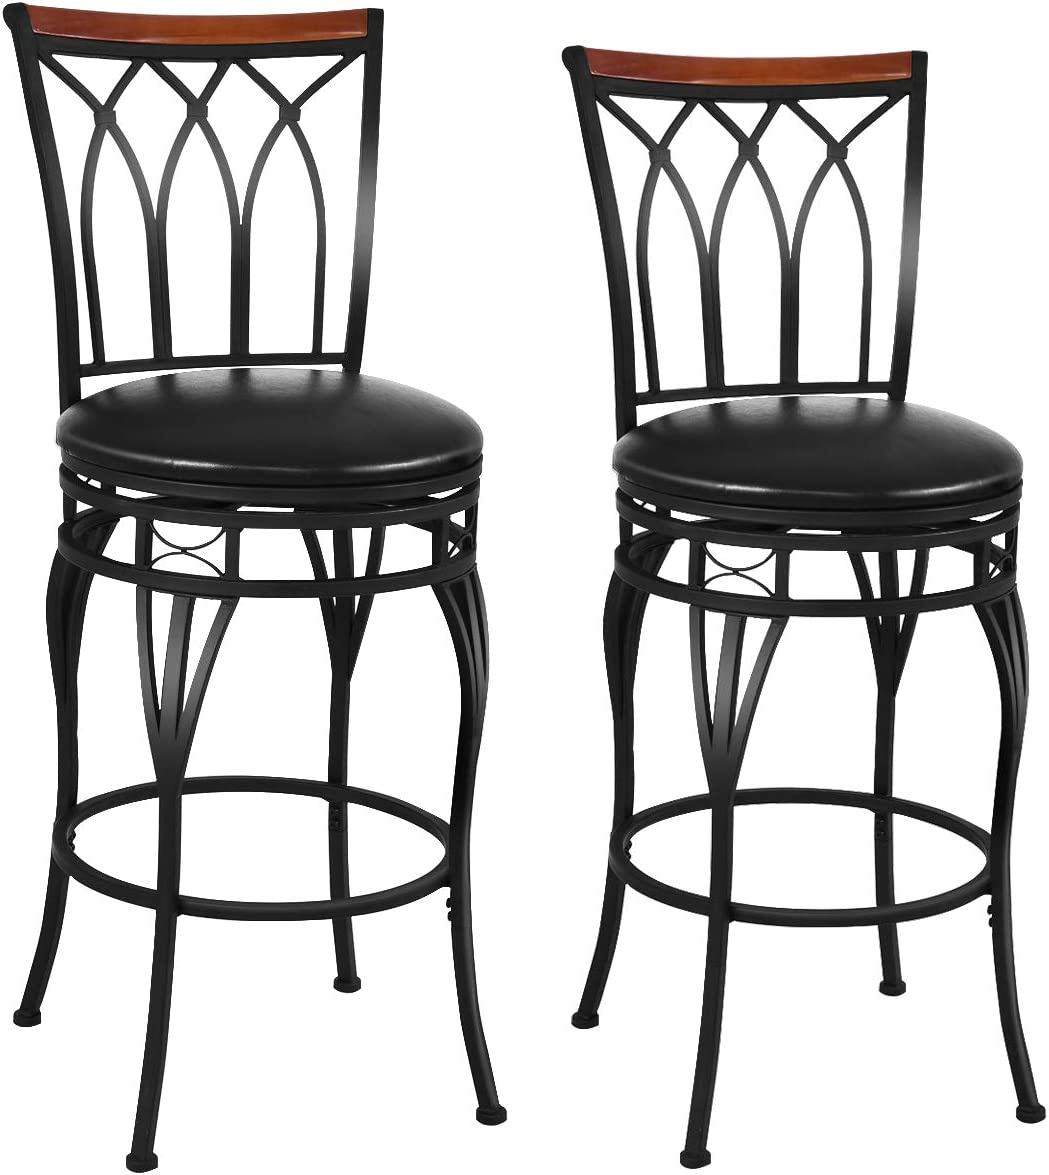 COSTWAY Set of 2 Bar Stool, Swivel Height Adjustable Bar Stool, Counter Bar Chair of Metal Frame, with Backrest, PU and Sponge Cushion, Footrest, Anti-Slip Foot Stakes for Bar Counter Cafe Use 2